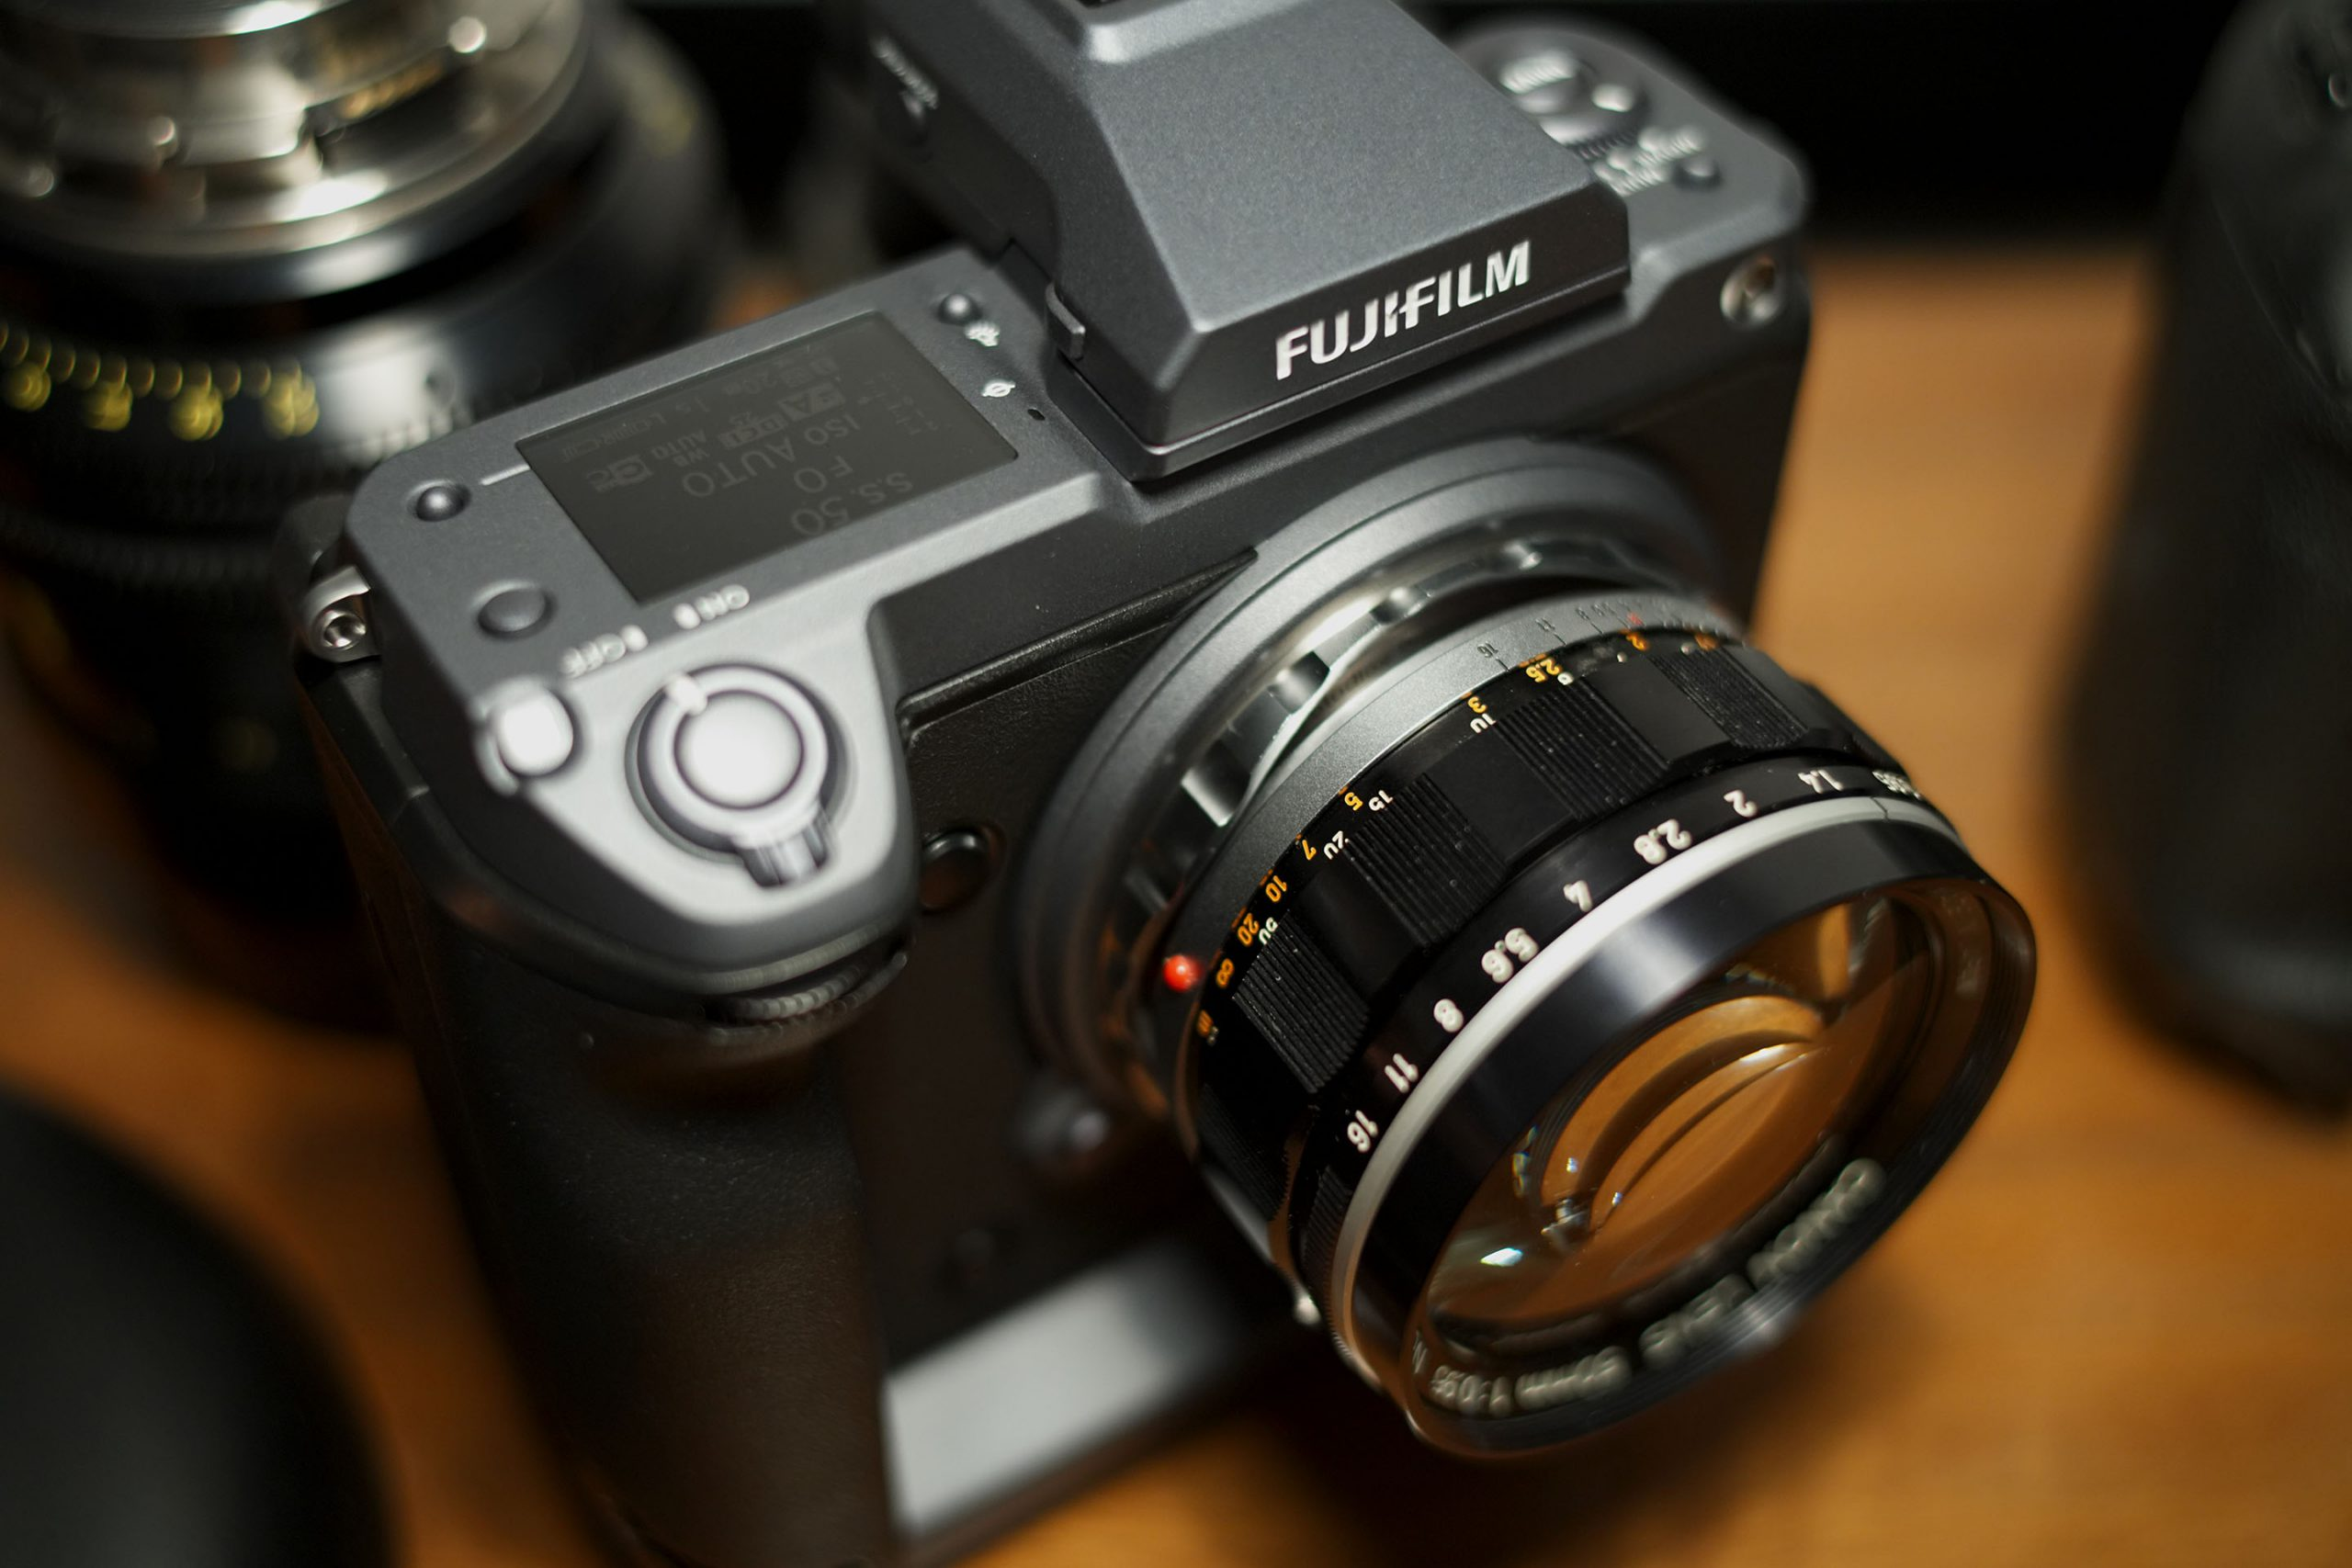 Fujifilm GFX 100 with Canon Dream Lens